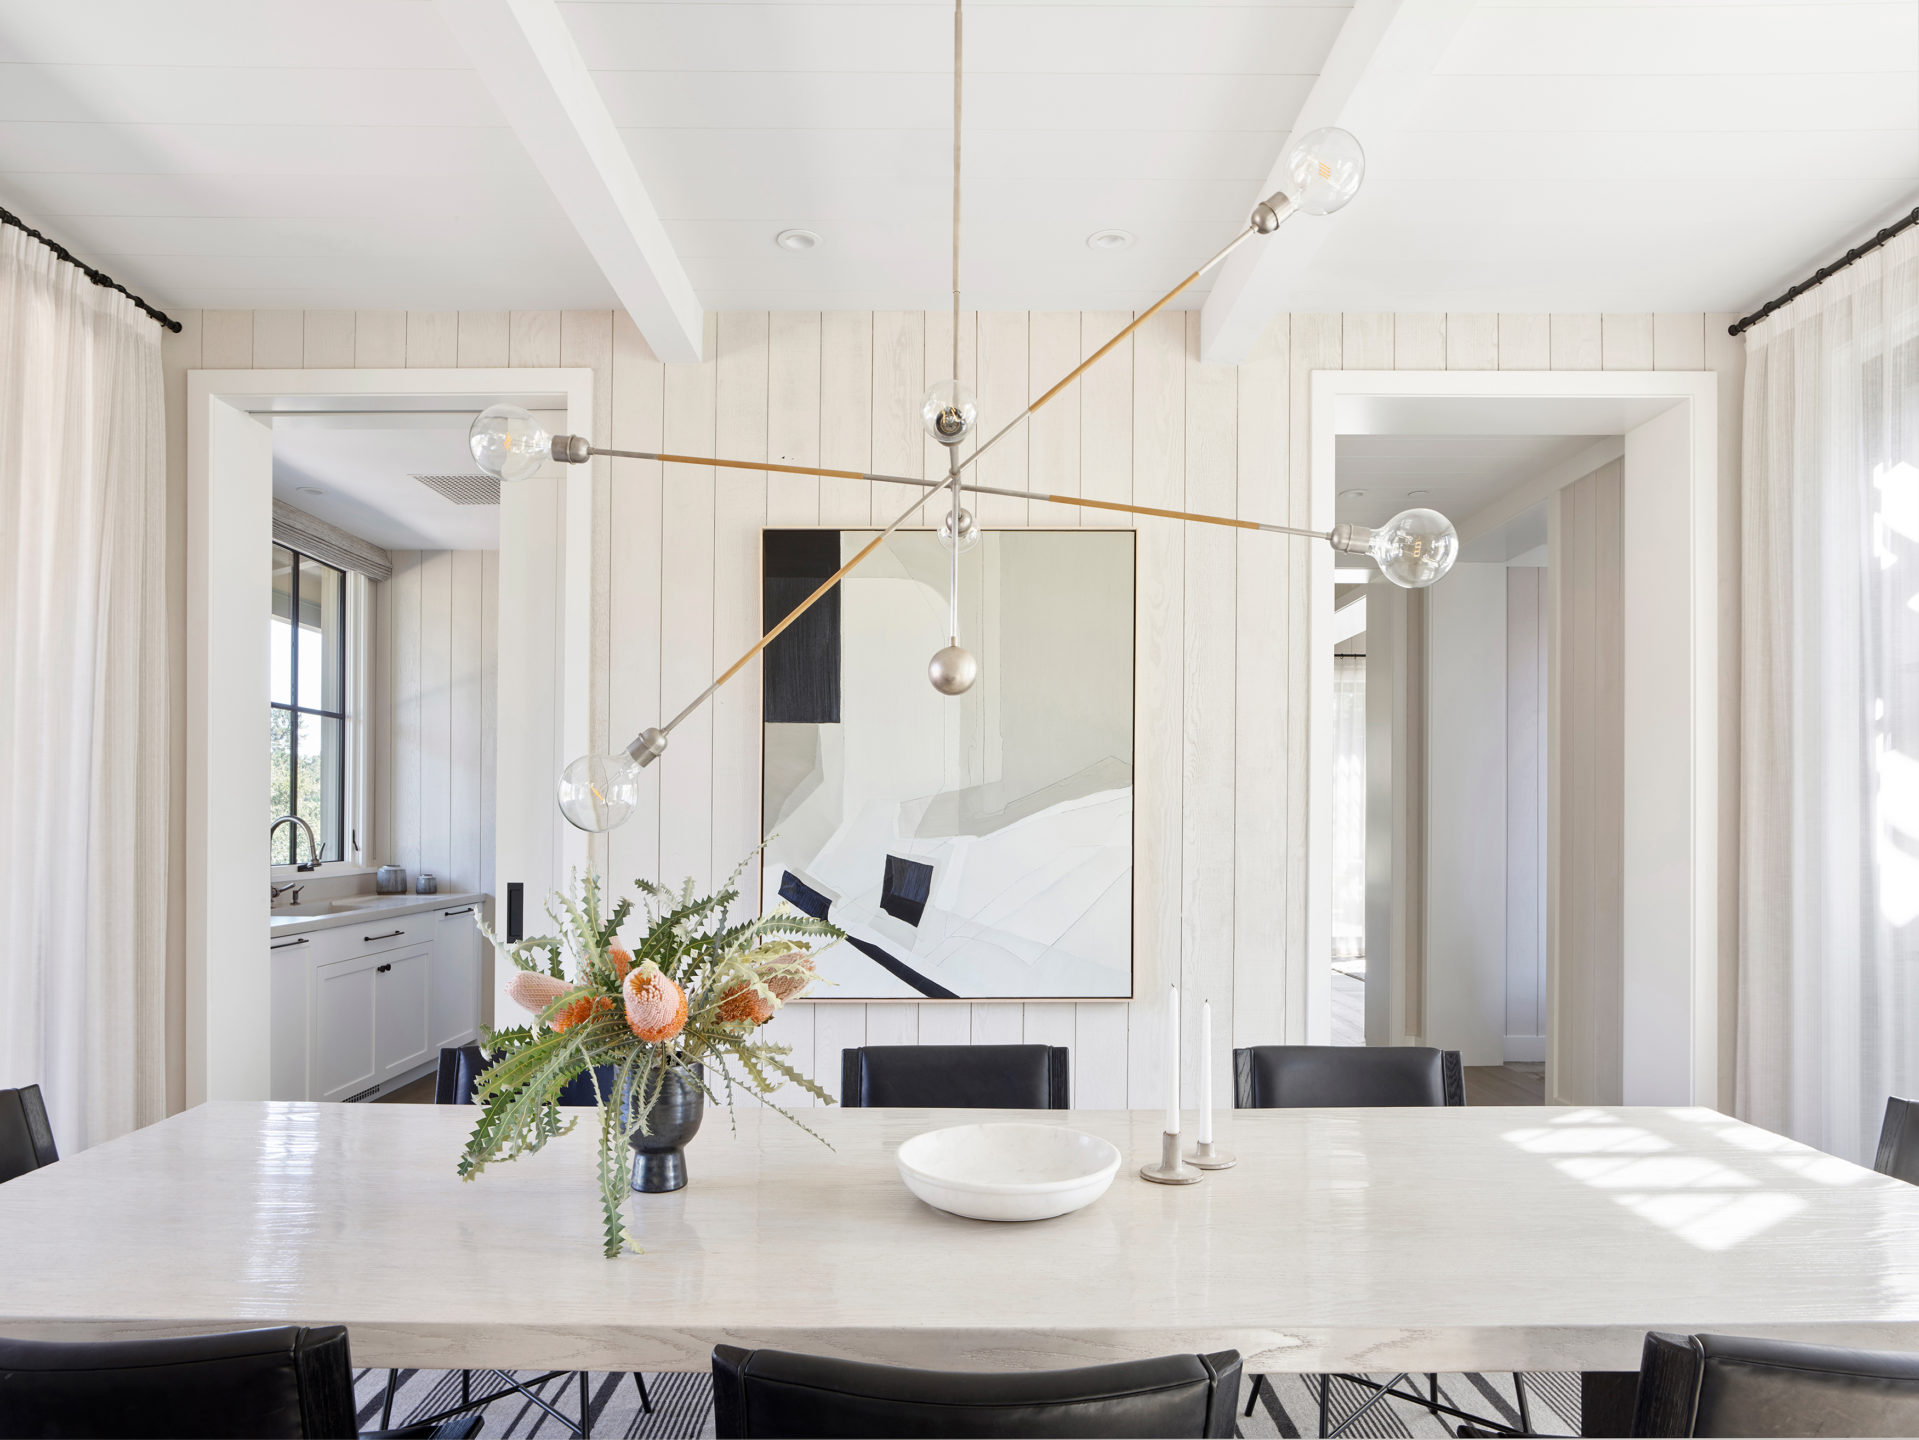 Jennifer_robins_interiors_projects_pacific_heights_portola_valley_dining_room_DR_6Portola_02_HR